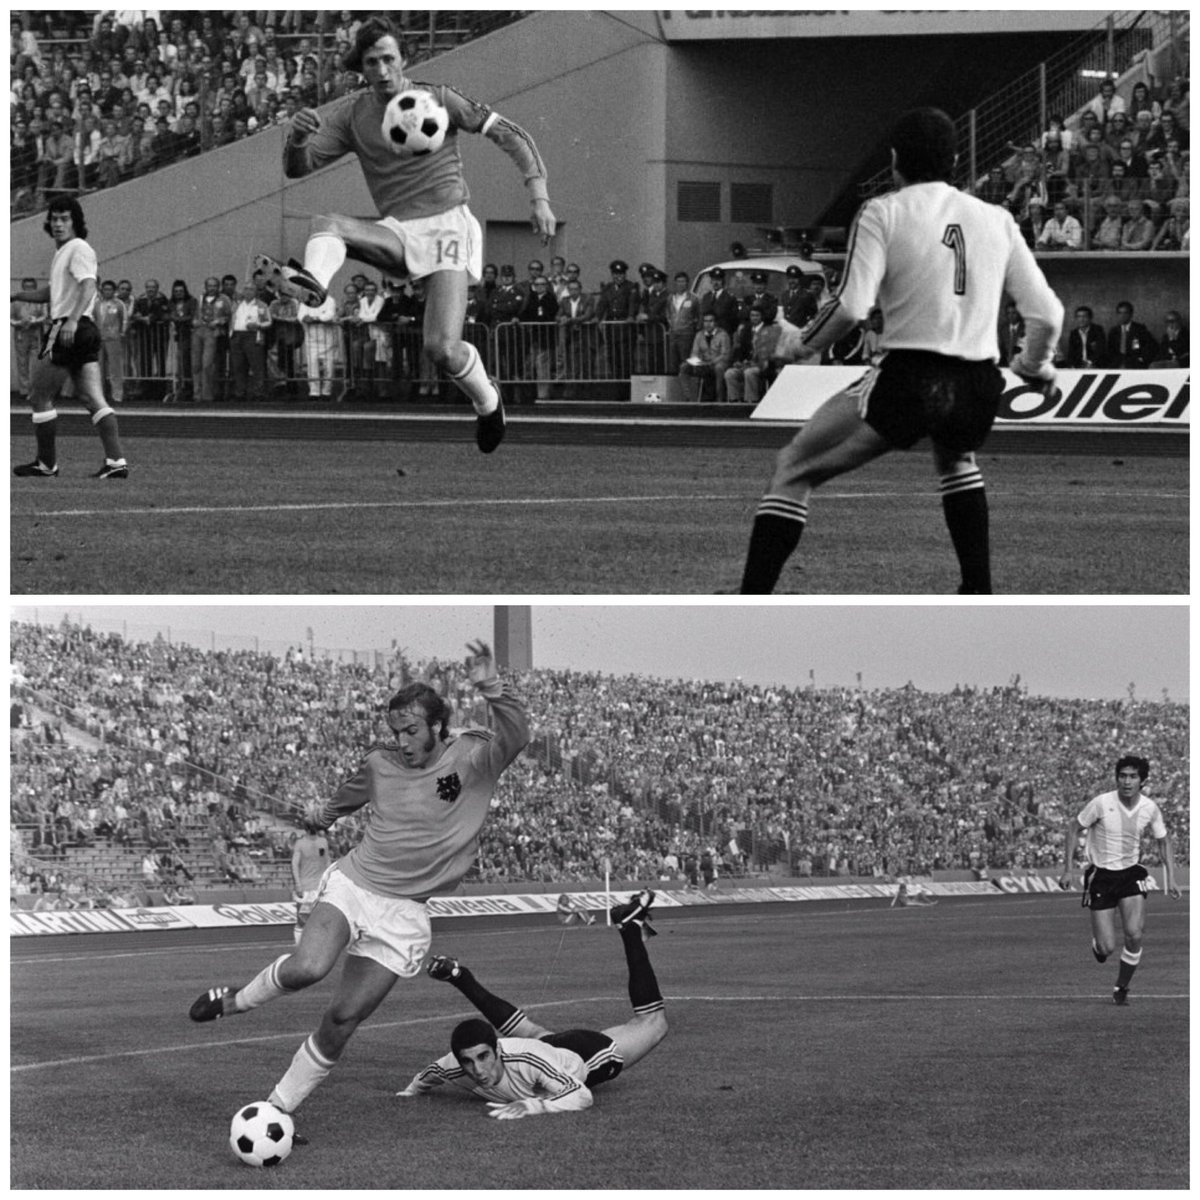 Johan 1 (Cruijff) and Johan 2 (Neeskens) for Holland vs Argentina. #johan #cruyff #neeskens #holland74 #oranje74 #holland #oranje #nederland #netherlands #itaned #fifa #worldcup #football #futbol #voetbal #argentina #albiceleste #mundial #wm74 https://t.co/M7FybSix4h